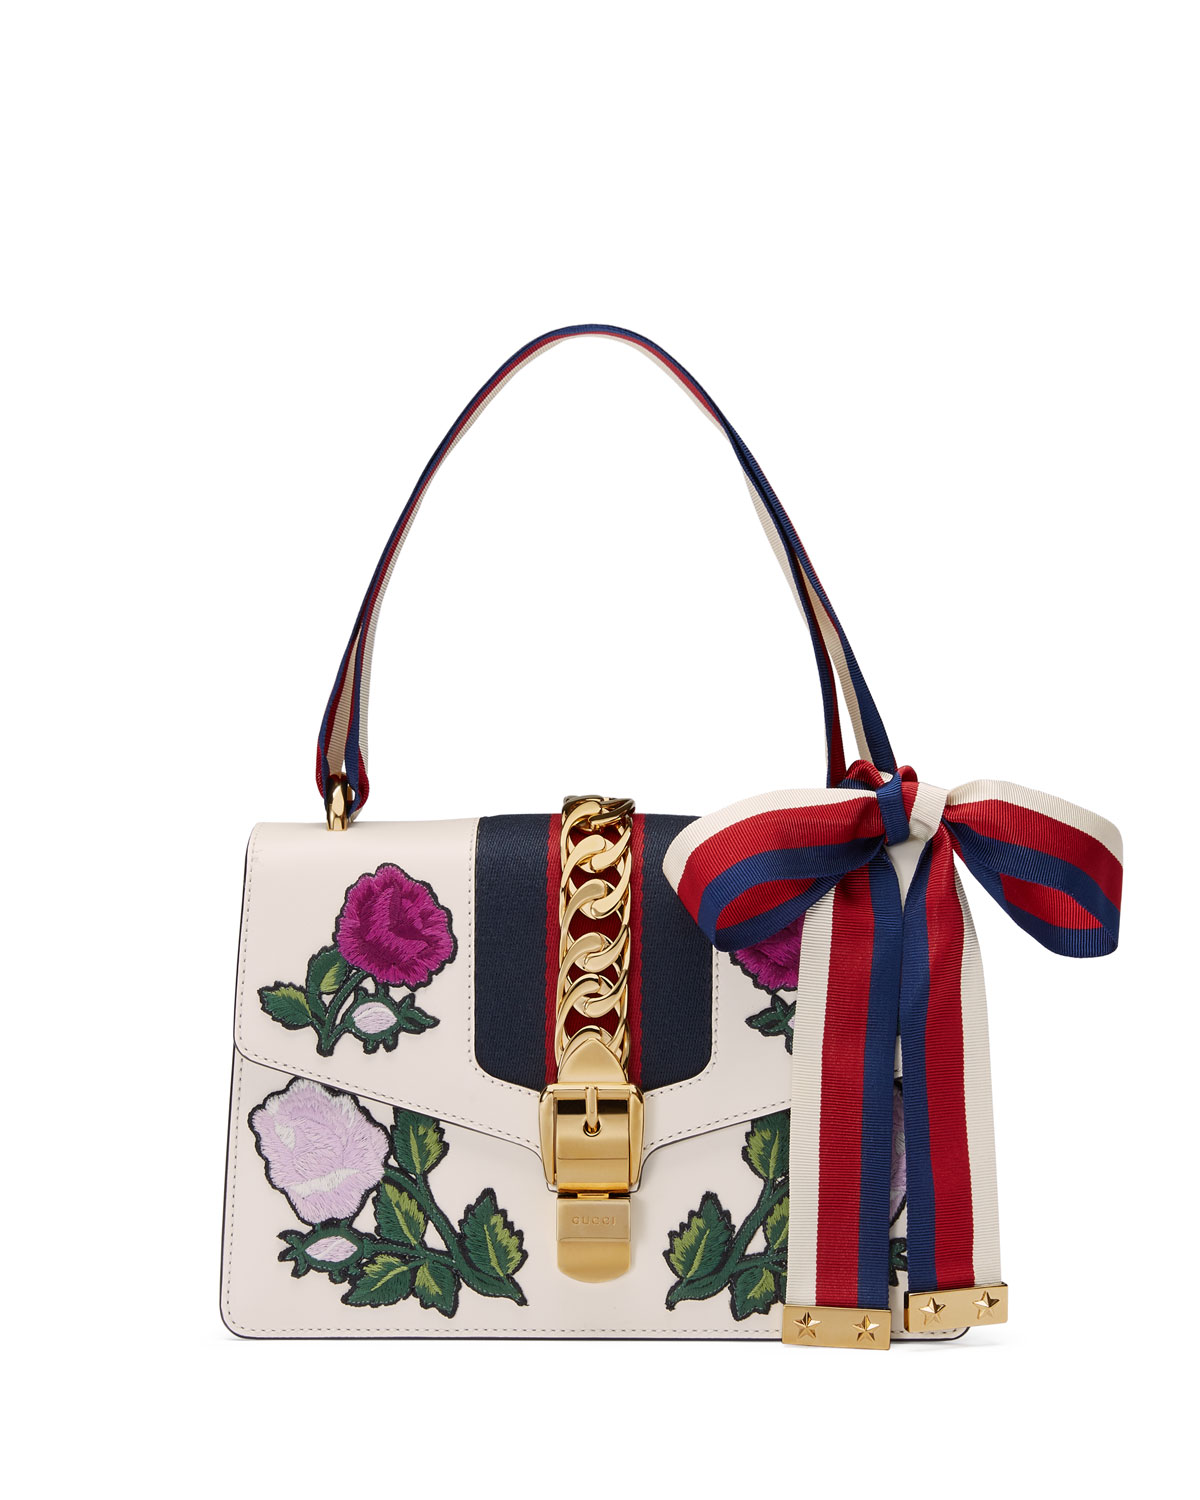 586162e23dd2 Gucci Sylvie Small Floral-Embroidered Shoulder Bag